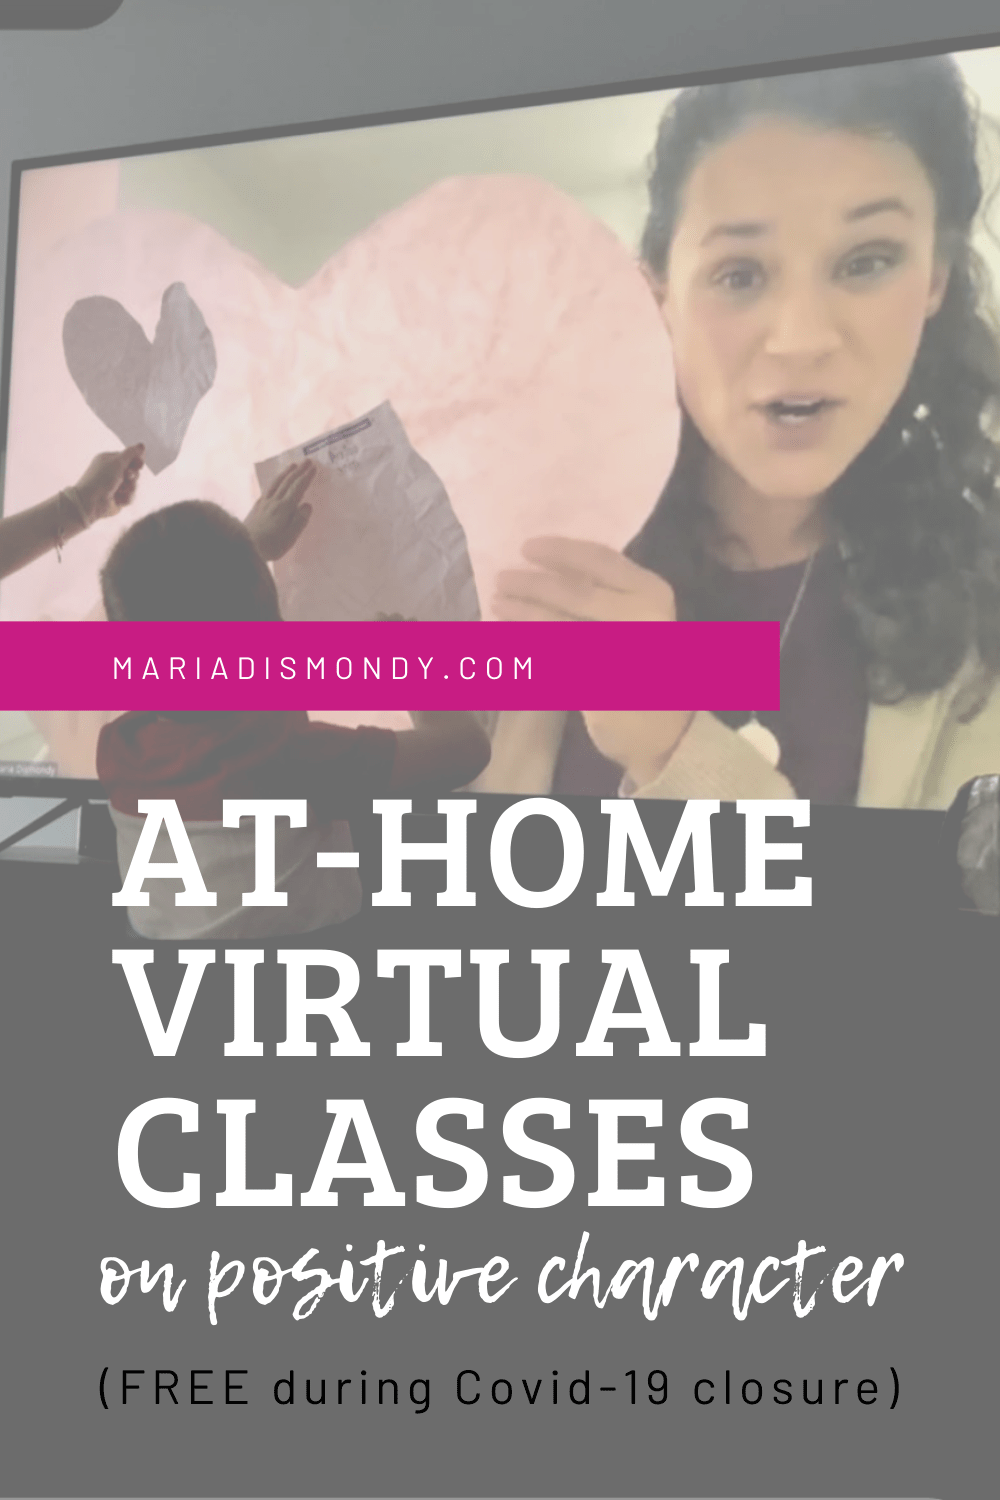 At-Home Learning with Maria